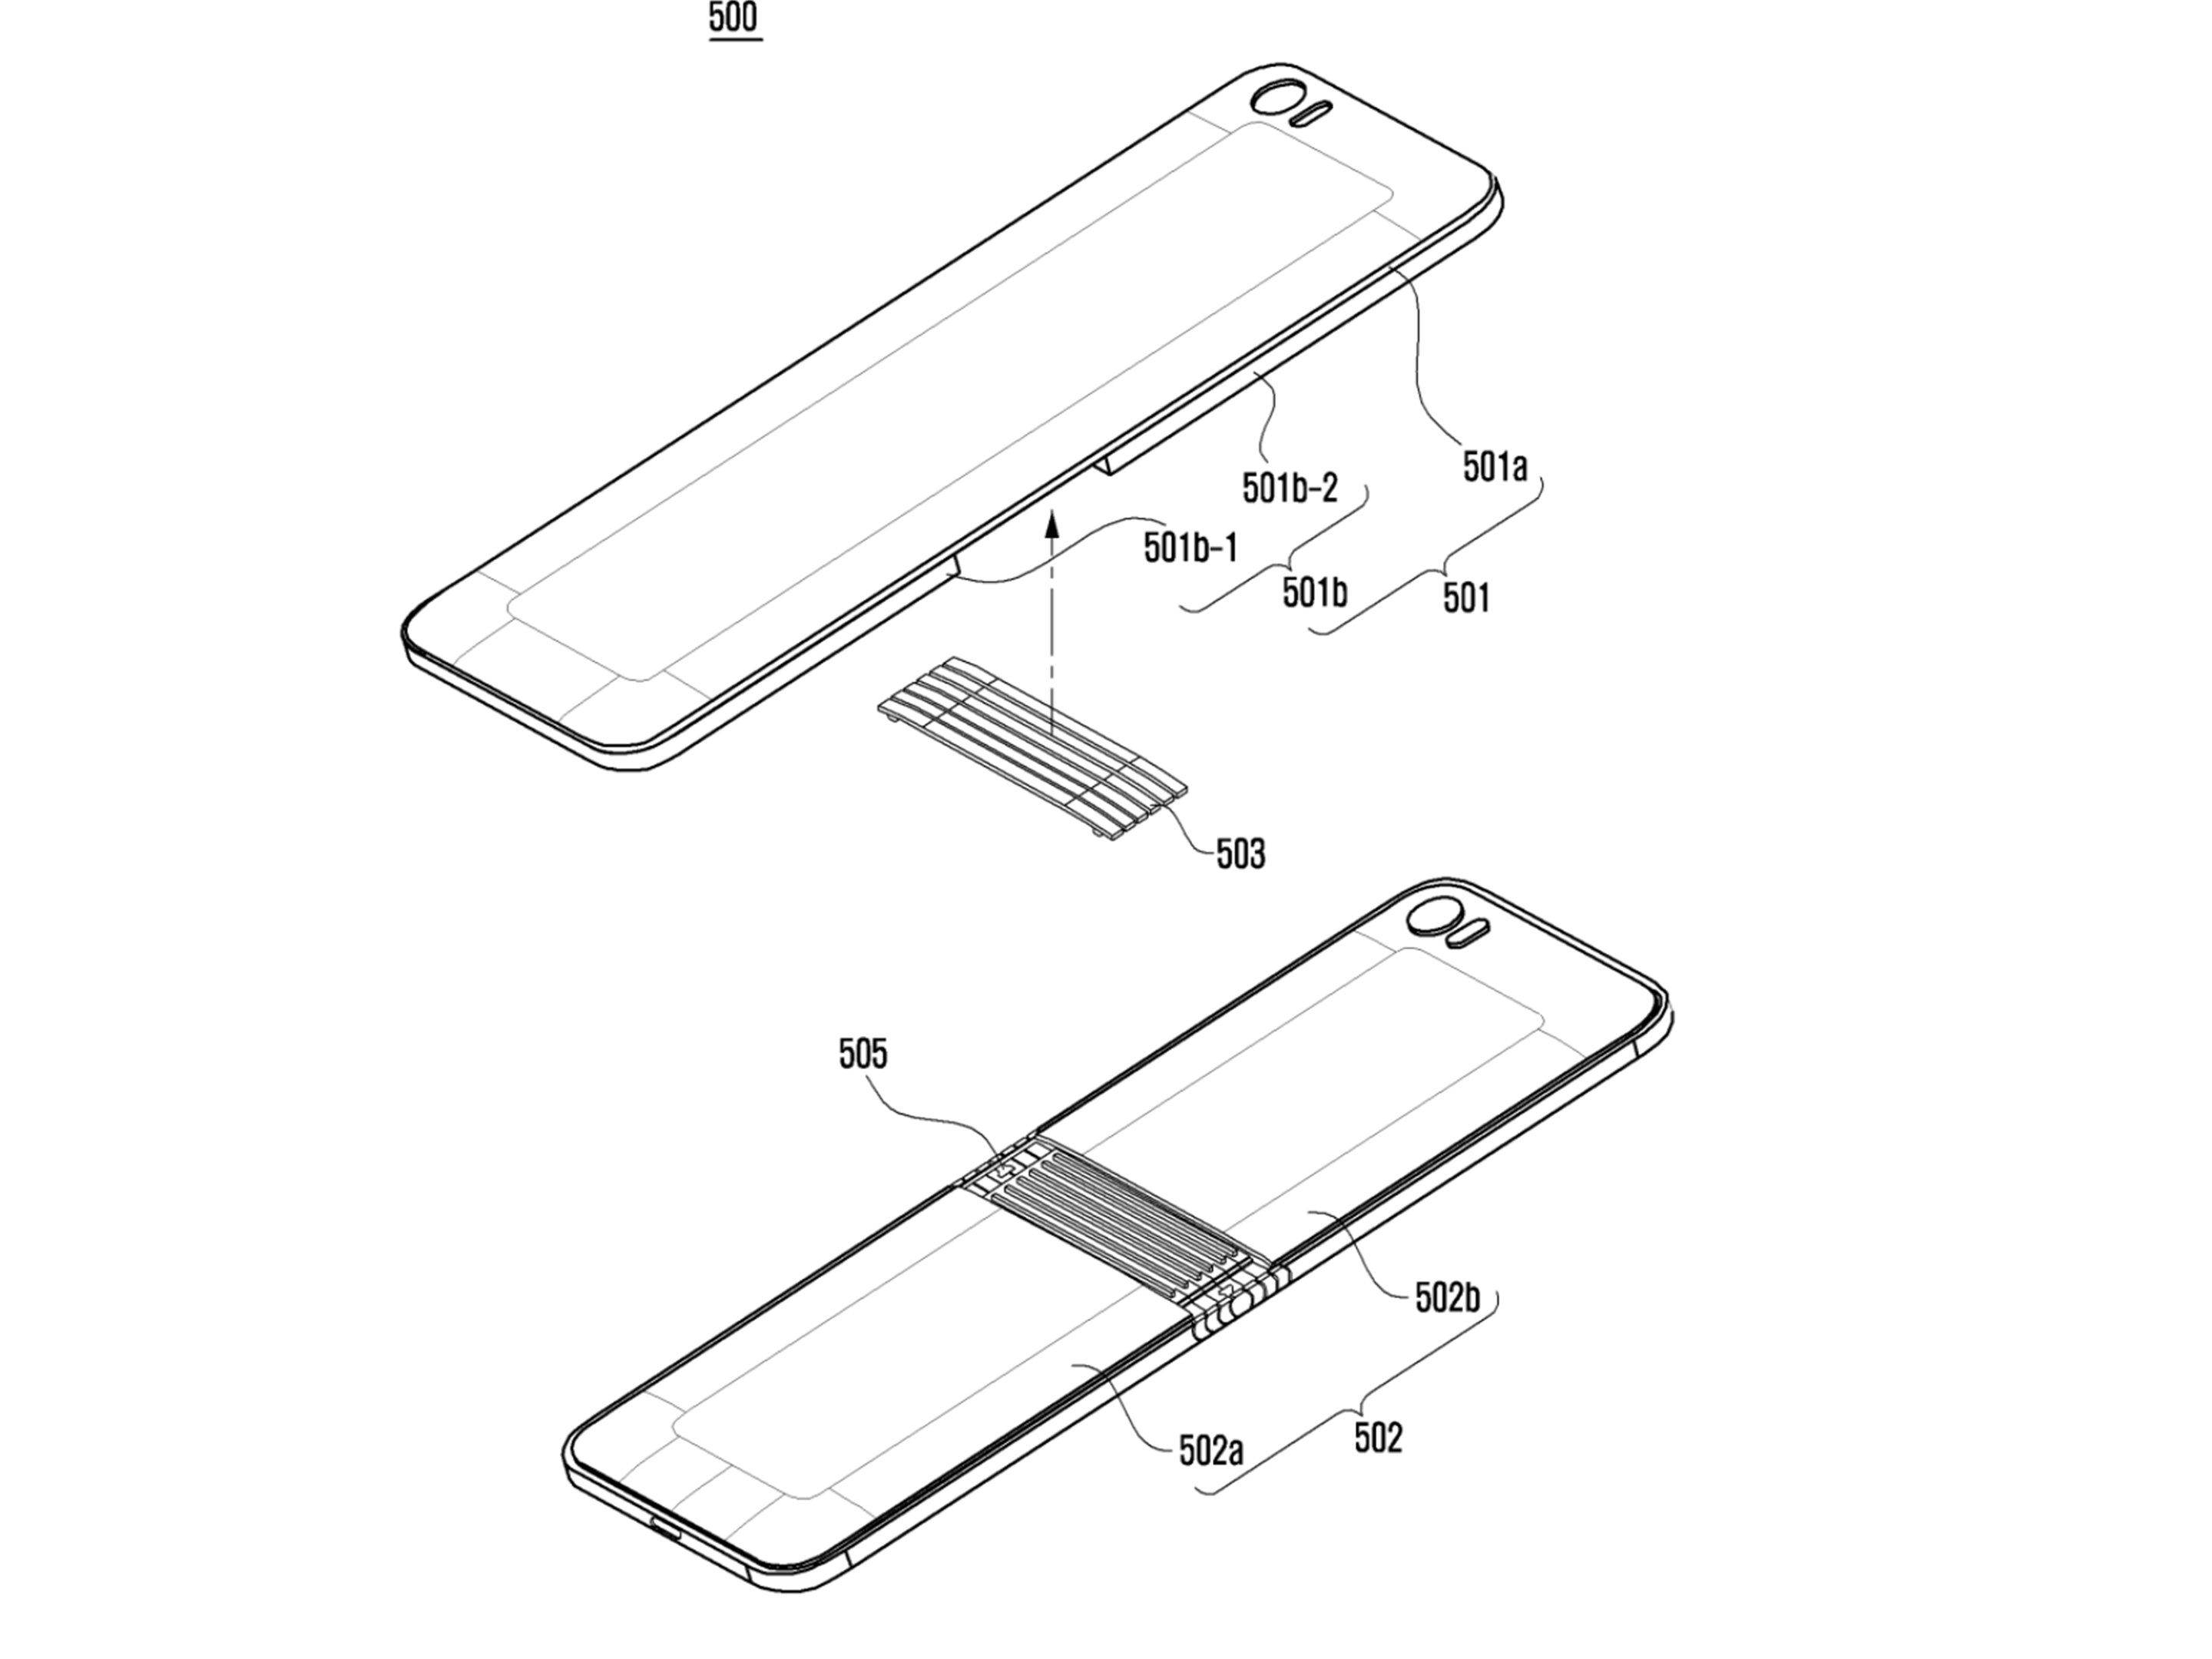 Samsung patent sketch shows off yet another foldable phone